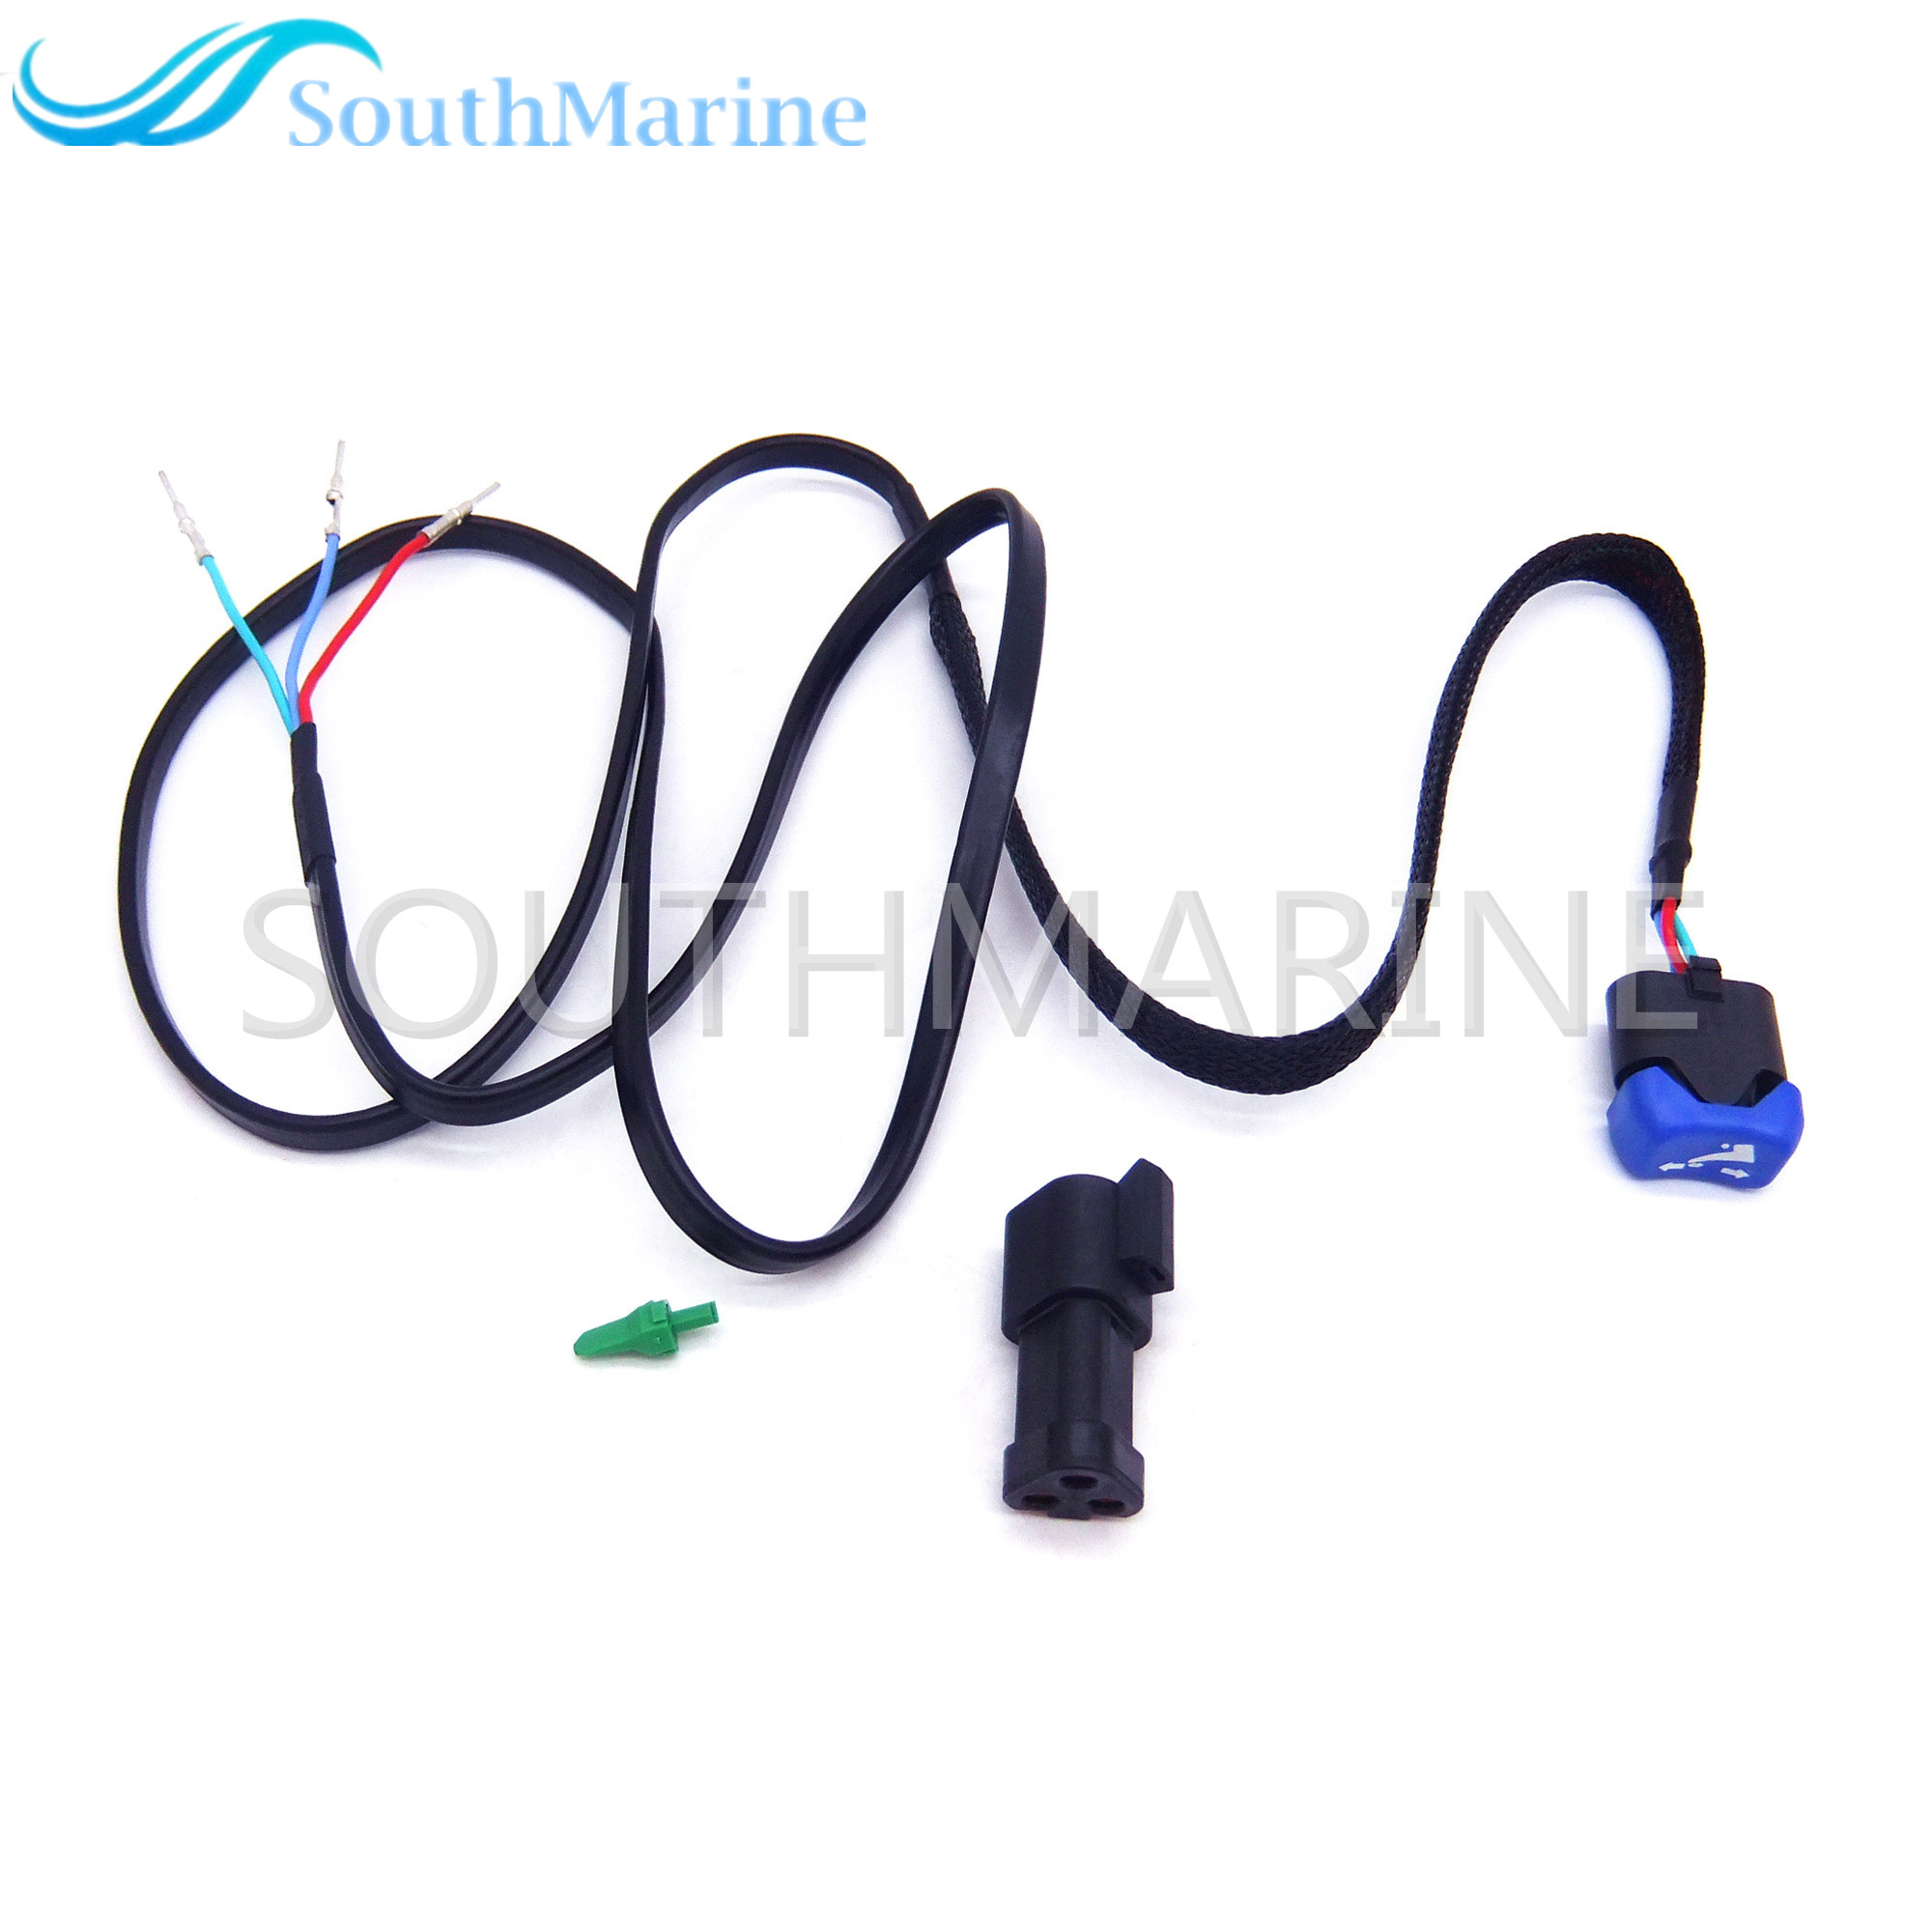 magideal 175974 5005801 ignition switch key assembly with lanyard for omc johnson evinrude 40 [ 2000 x 2000 Pixel ]